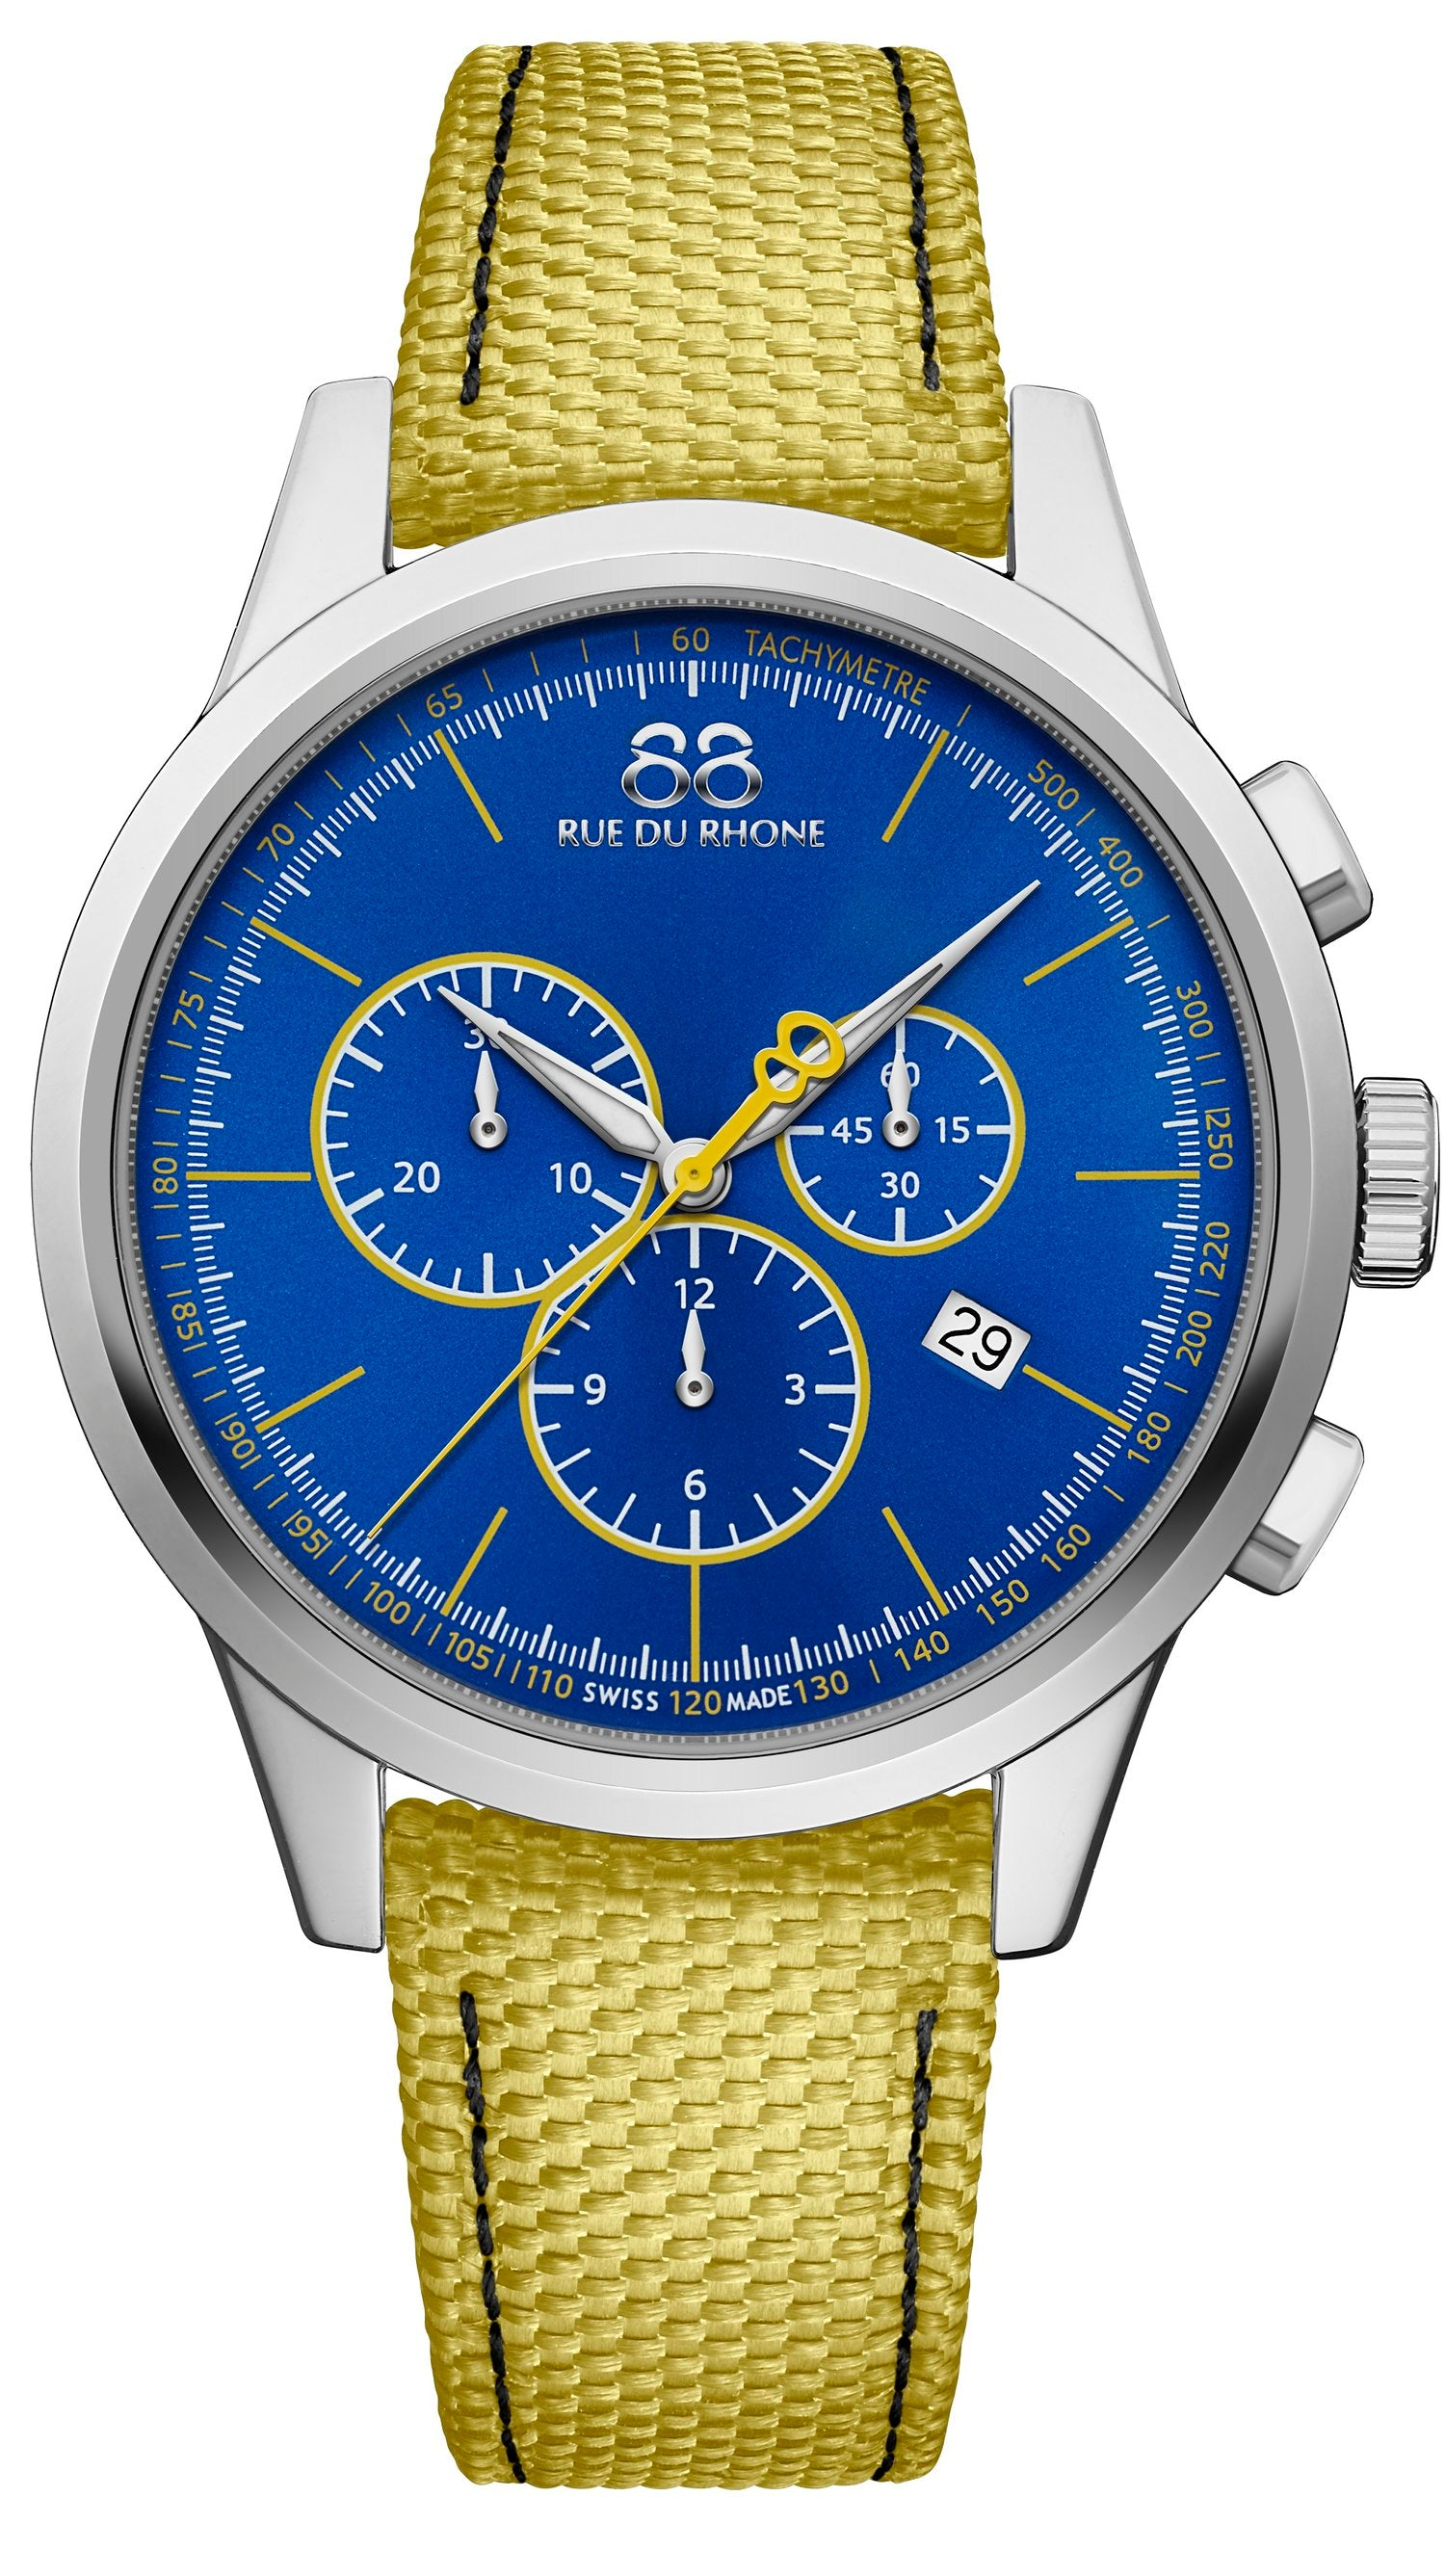 87WA184304 88 Rue du Rhone mens Swiss Watch Quartz Rive